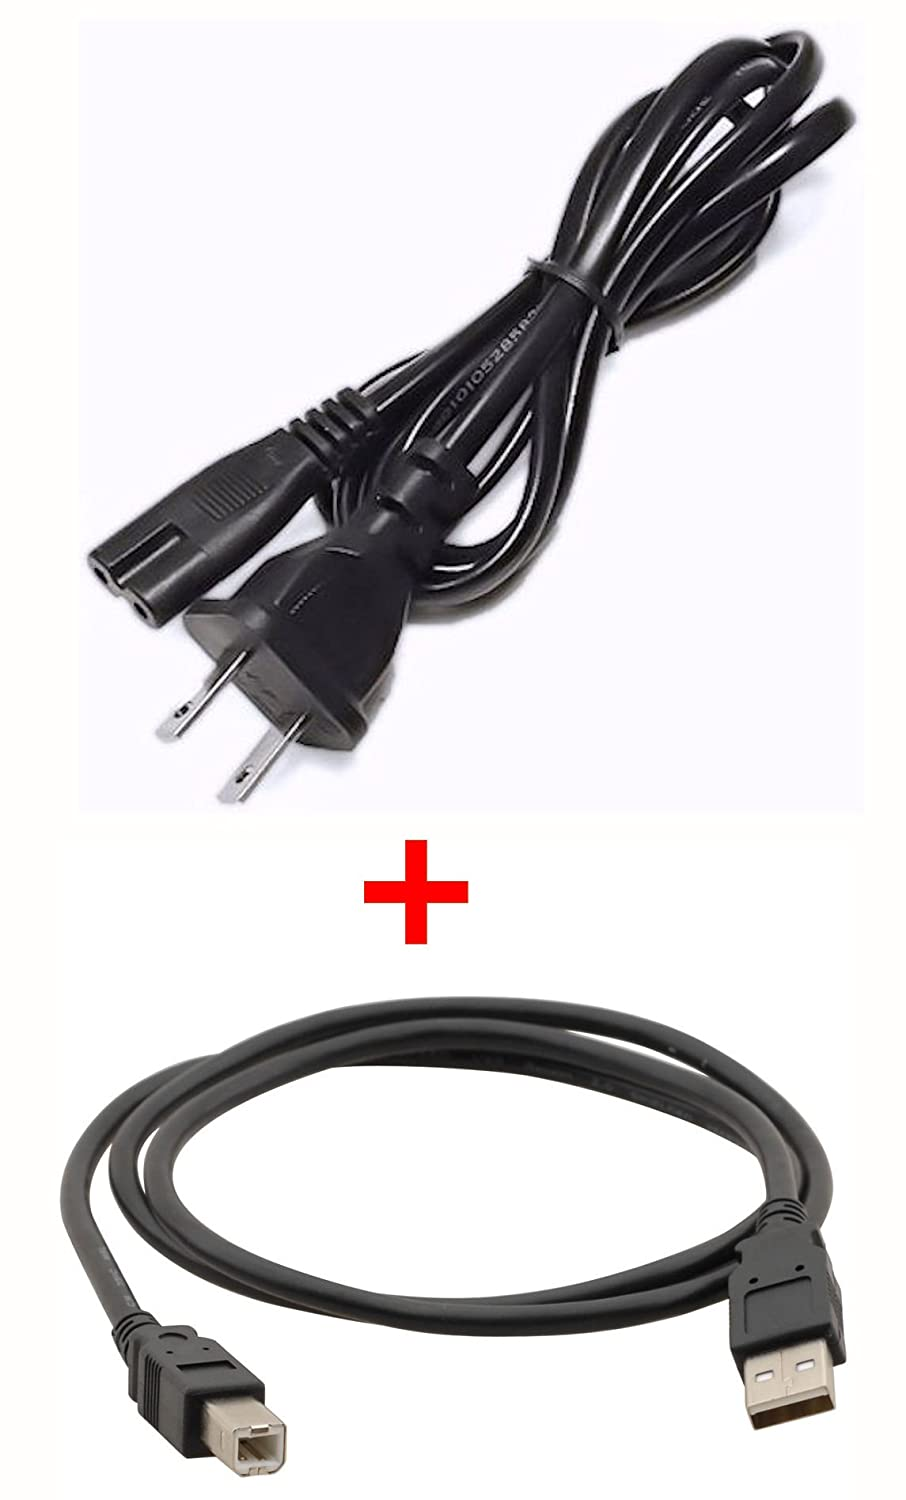 PlatinumPower - Cable de alimentación de CA + Cable USB para ...